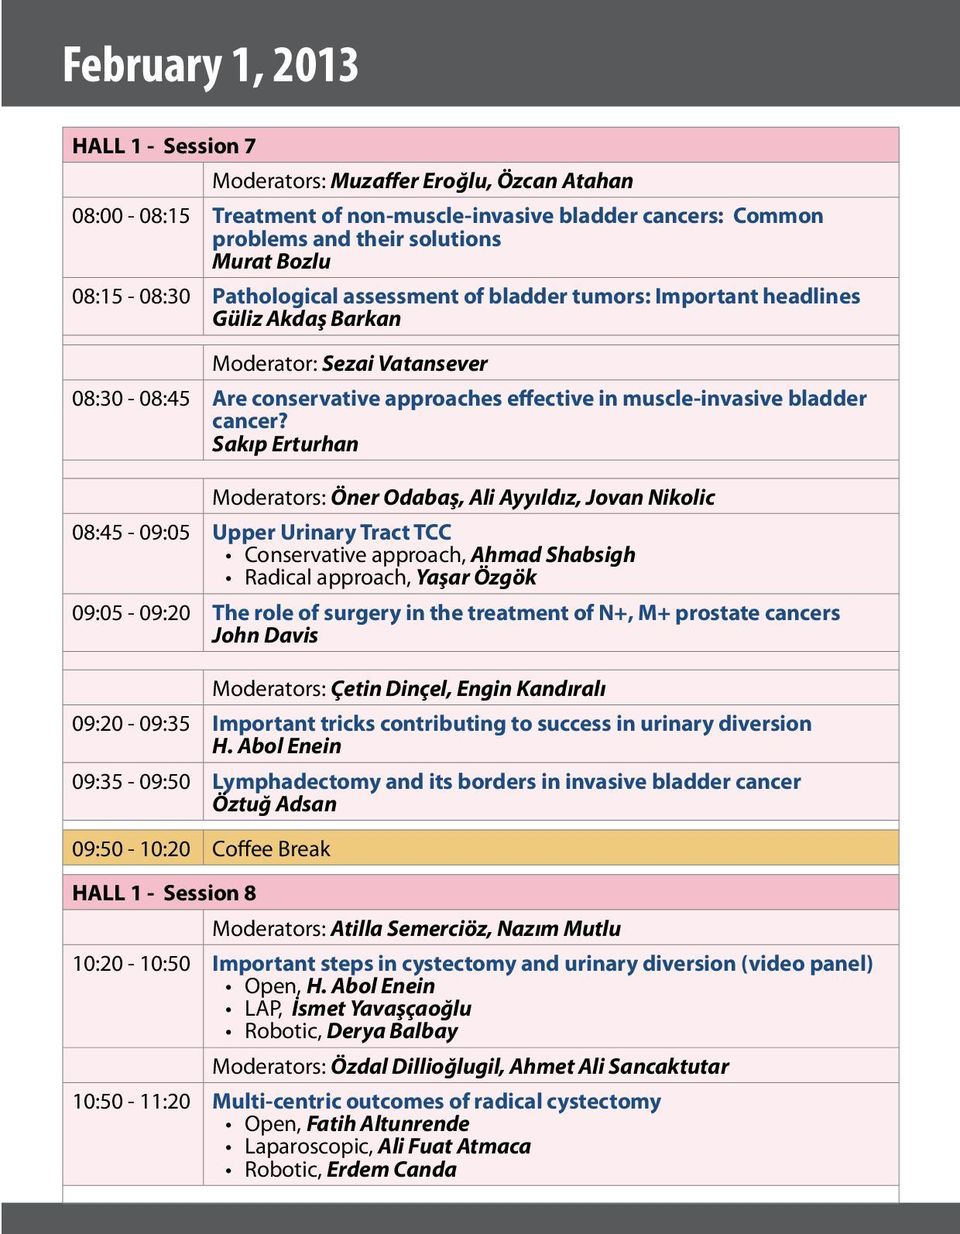 Sakıp Erturhan Moderators: Öner Odabaş, Ali Ayyıldız, Jovan Nikolic 08:45-09:05 Upper Urinary Tract TCC Conservative approach, Ahmad Shabsigh Radical approach, Yaşar Özgök 09:05-09:20 The role of